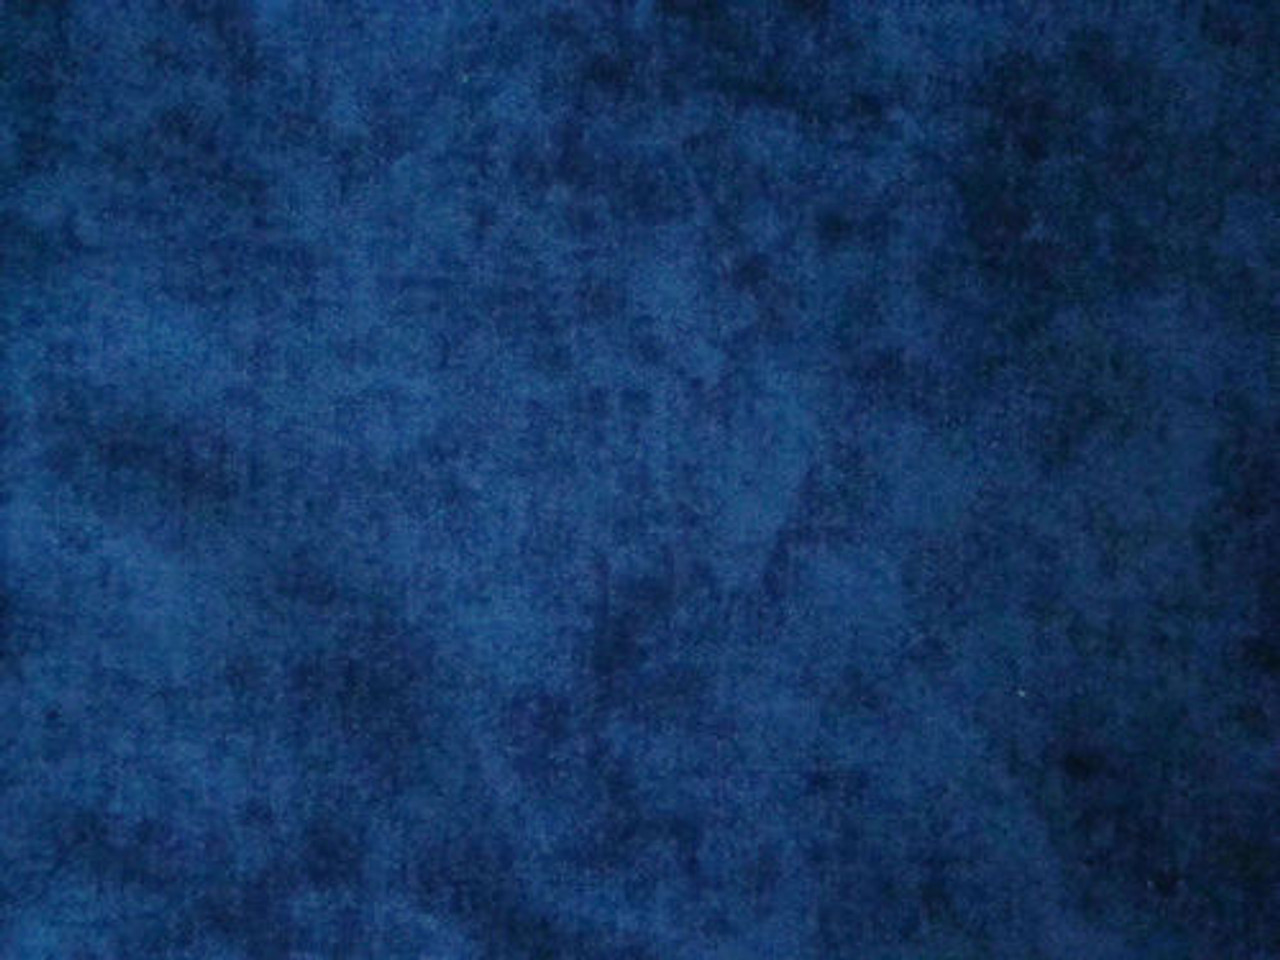 Distressed Blue Fabric